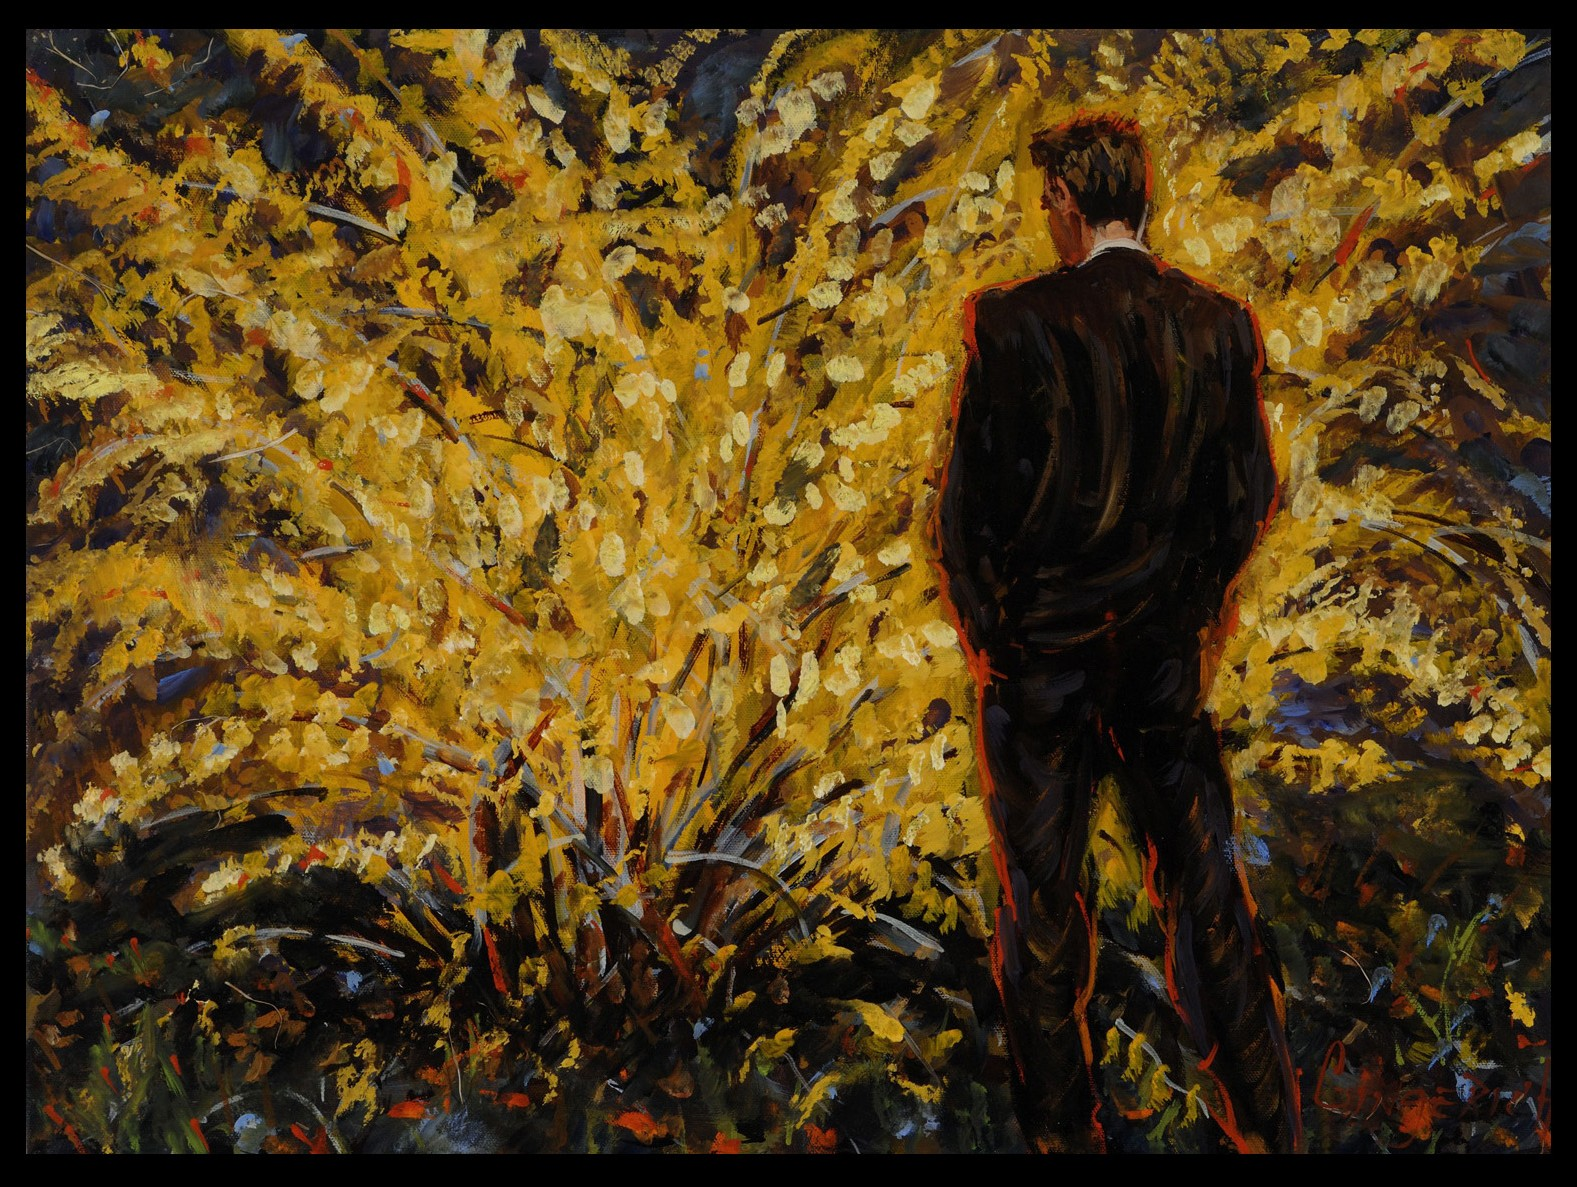 Contemplating Yellow  18 x 24 inches, oil on canvas